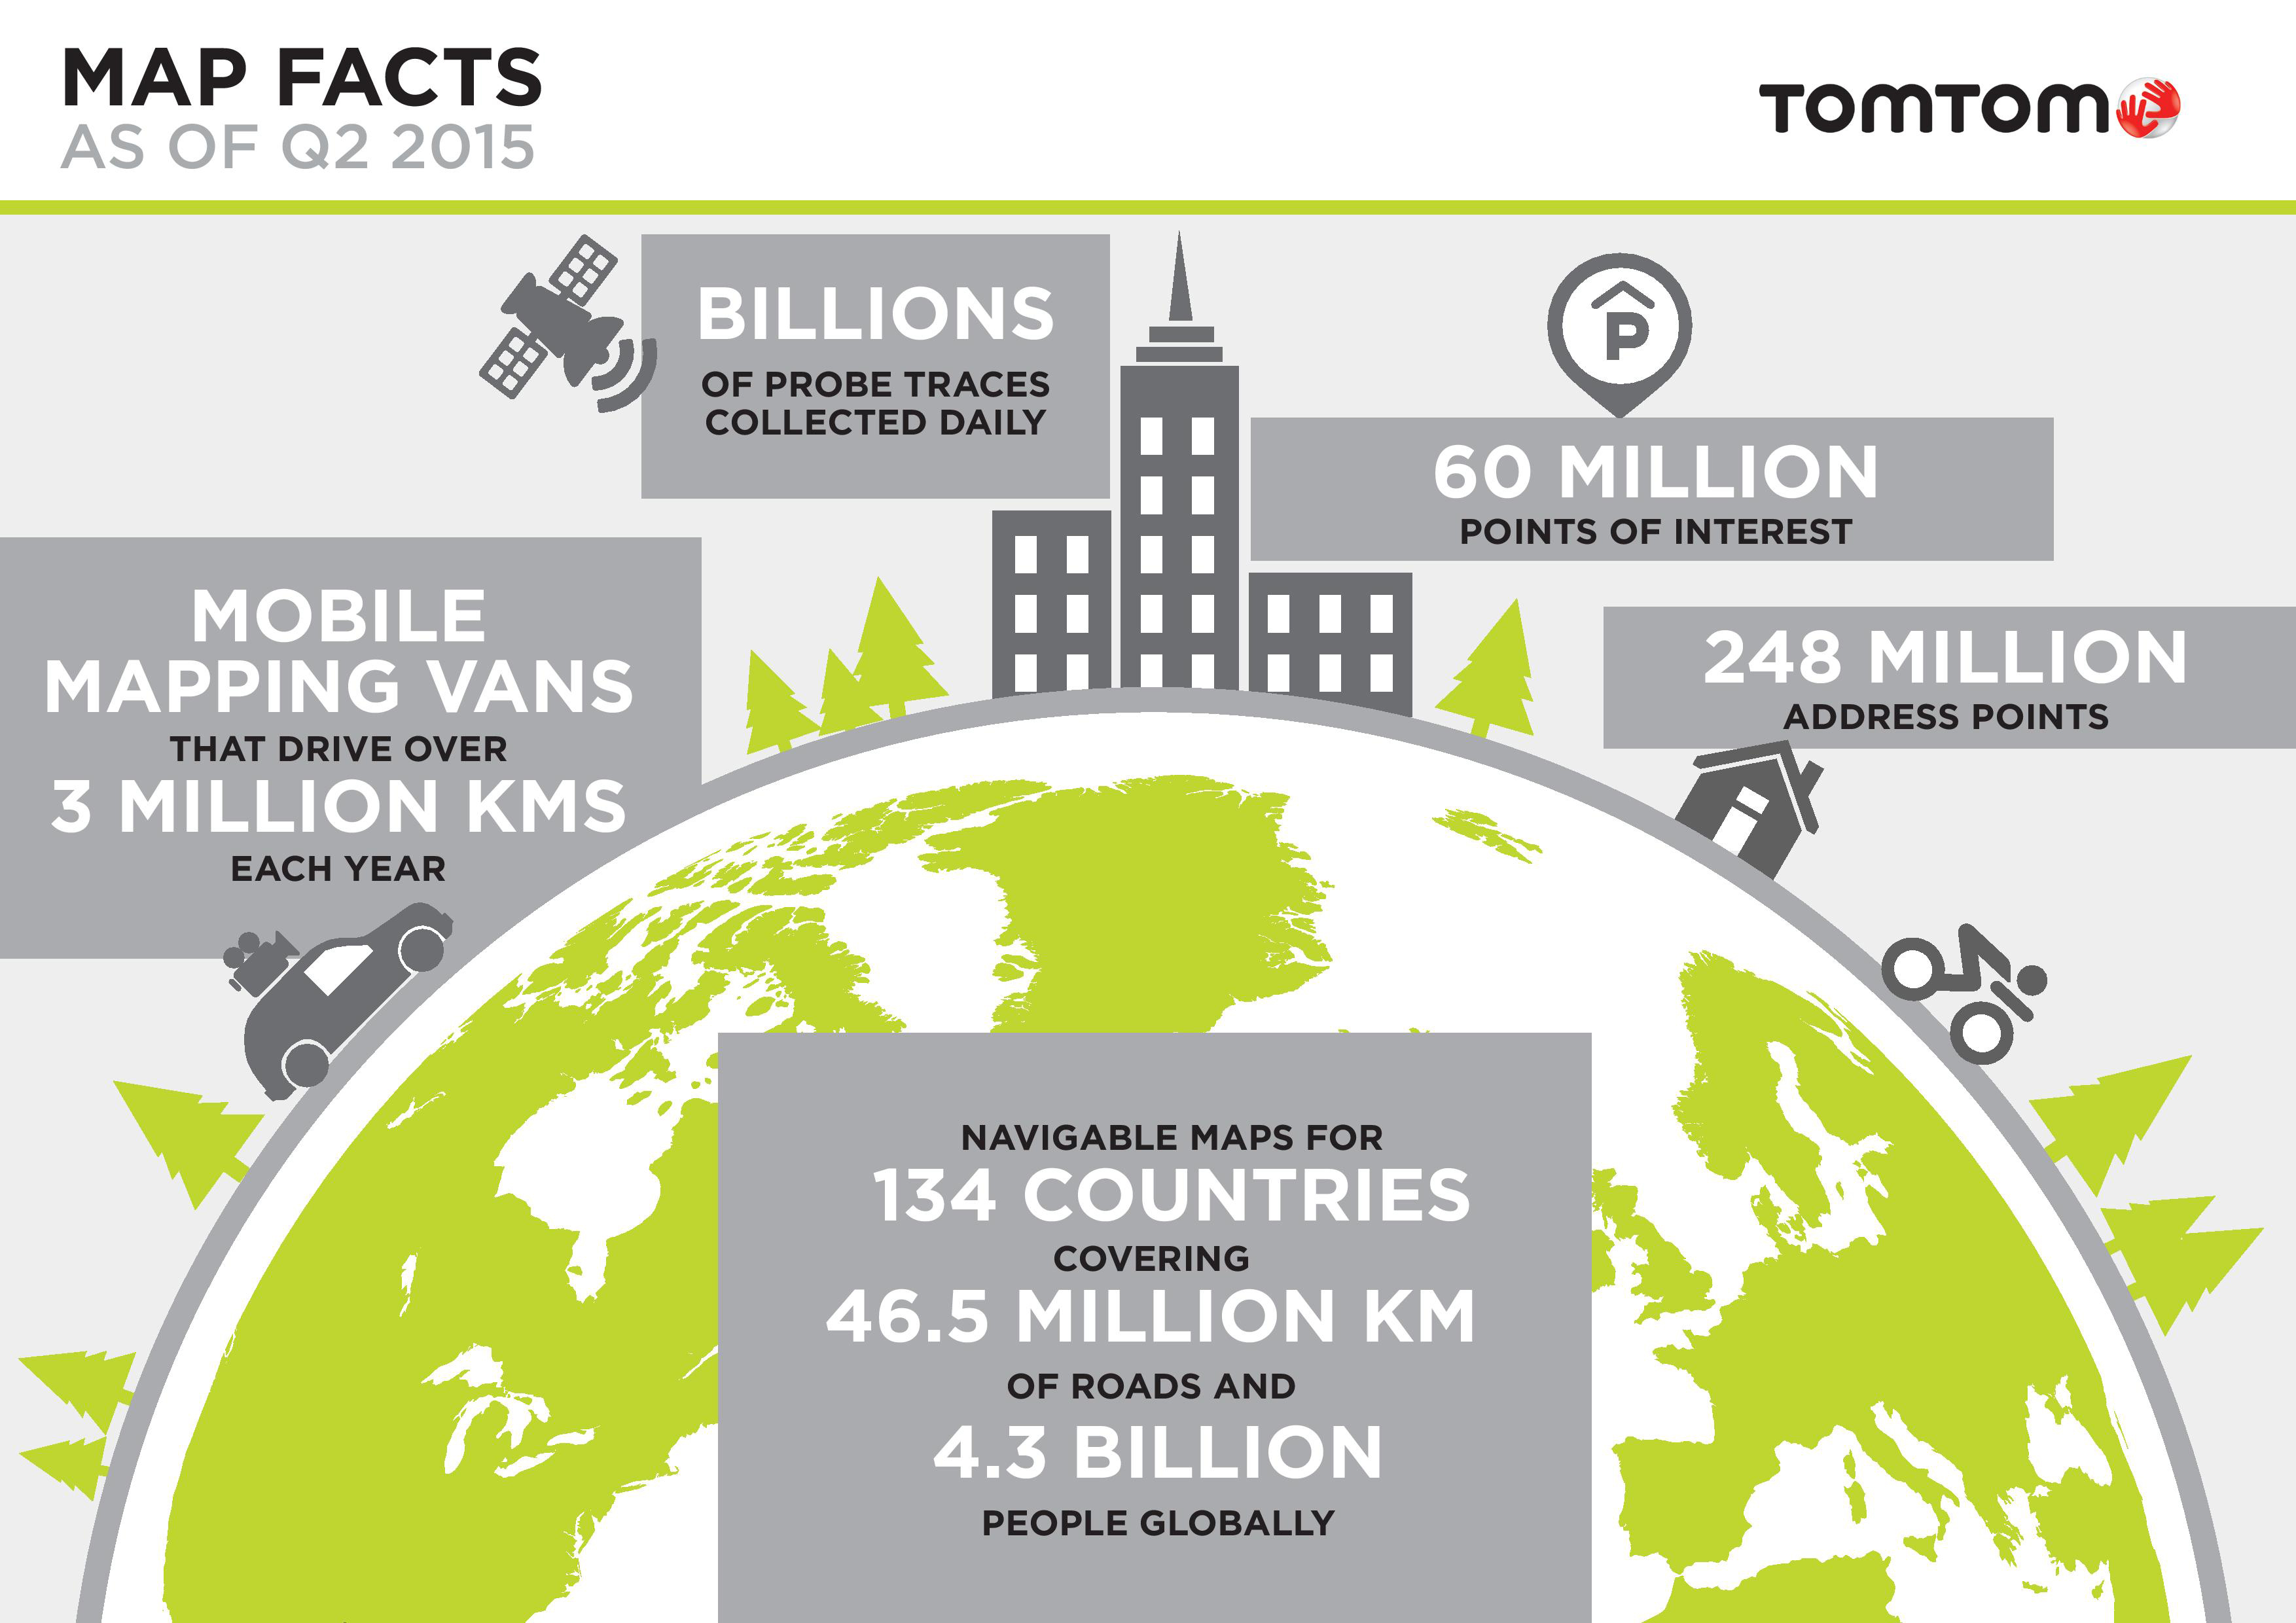 tomtom maps south africa Tomtom Expands Map Footprint Globally Business Wire tomtom maps south africa